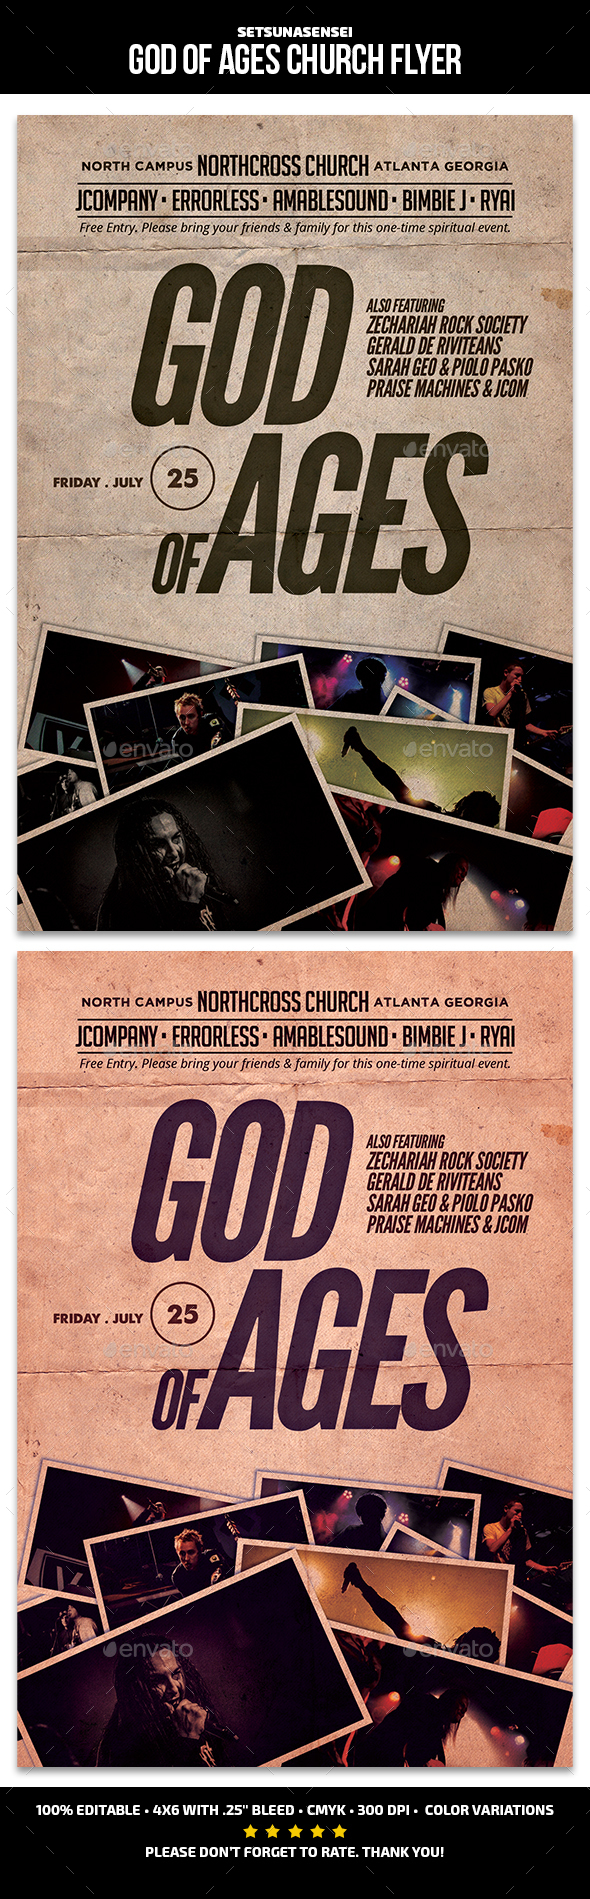 God of Ages Church Flyer - Church Flyers